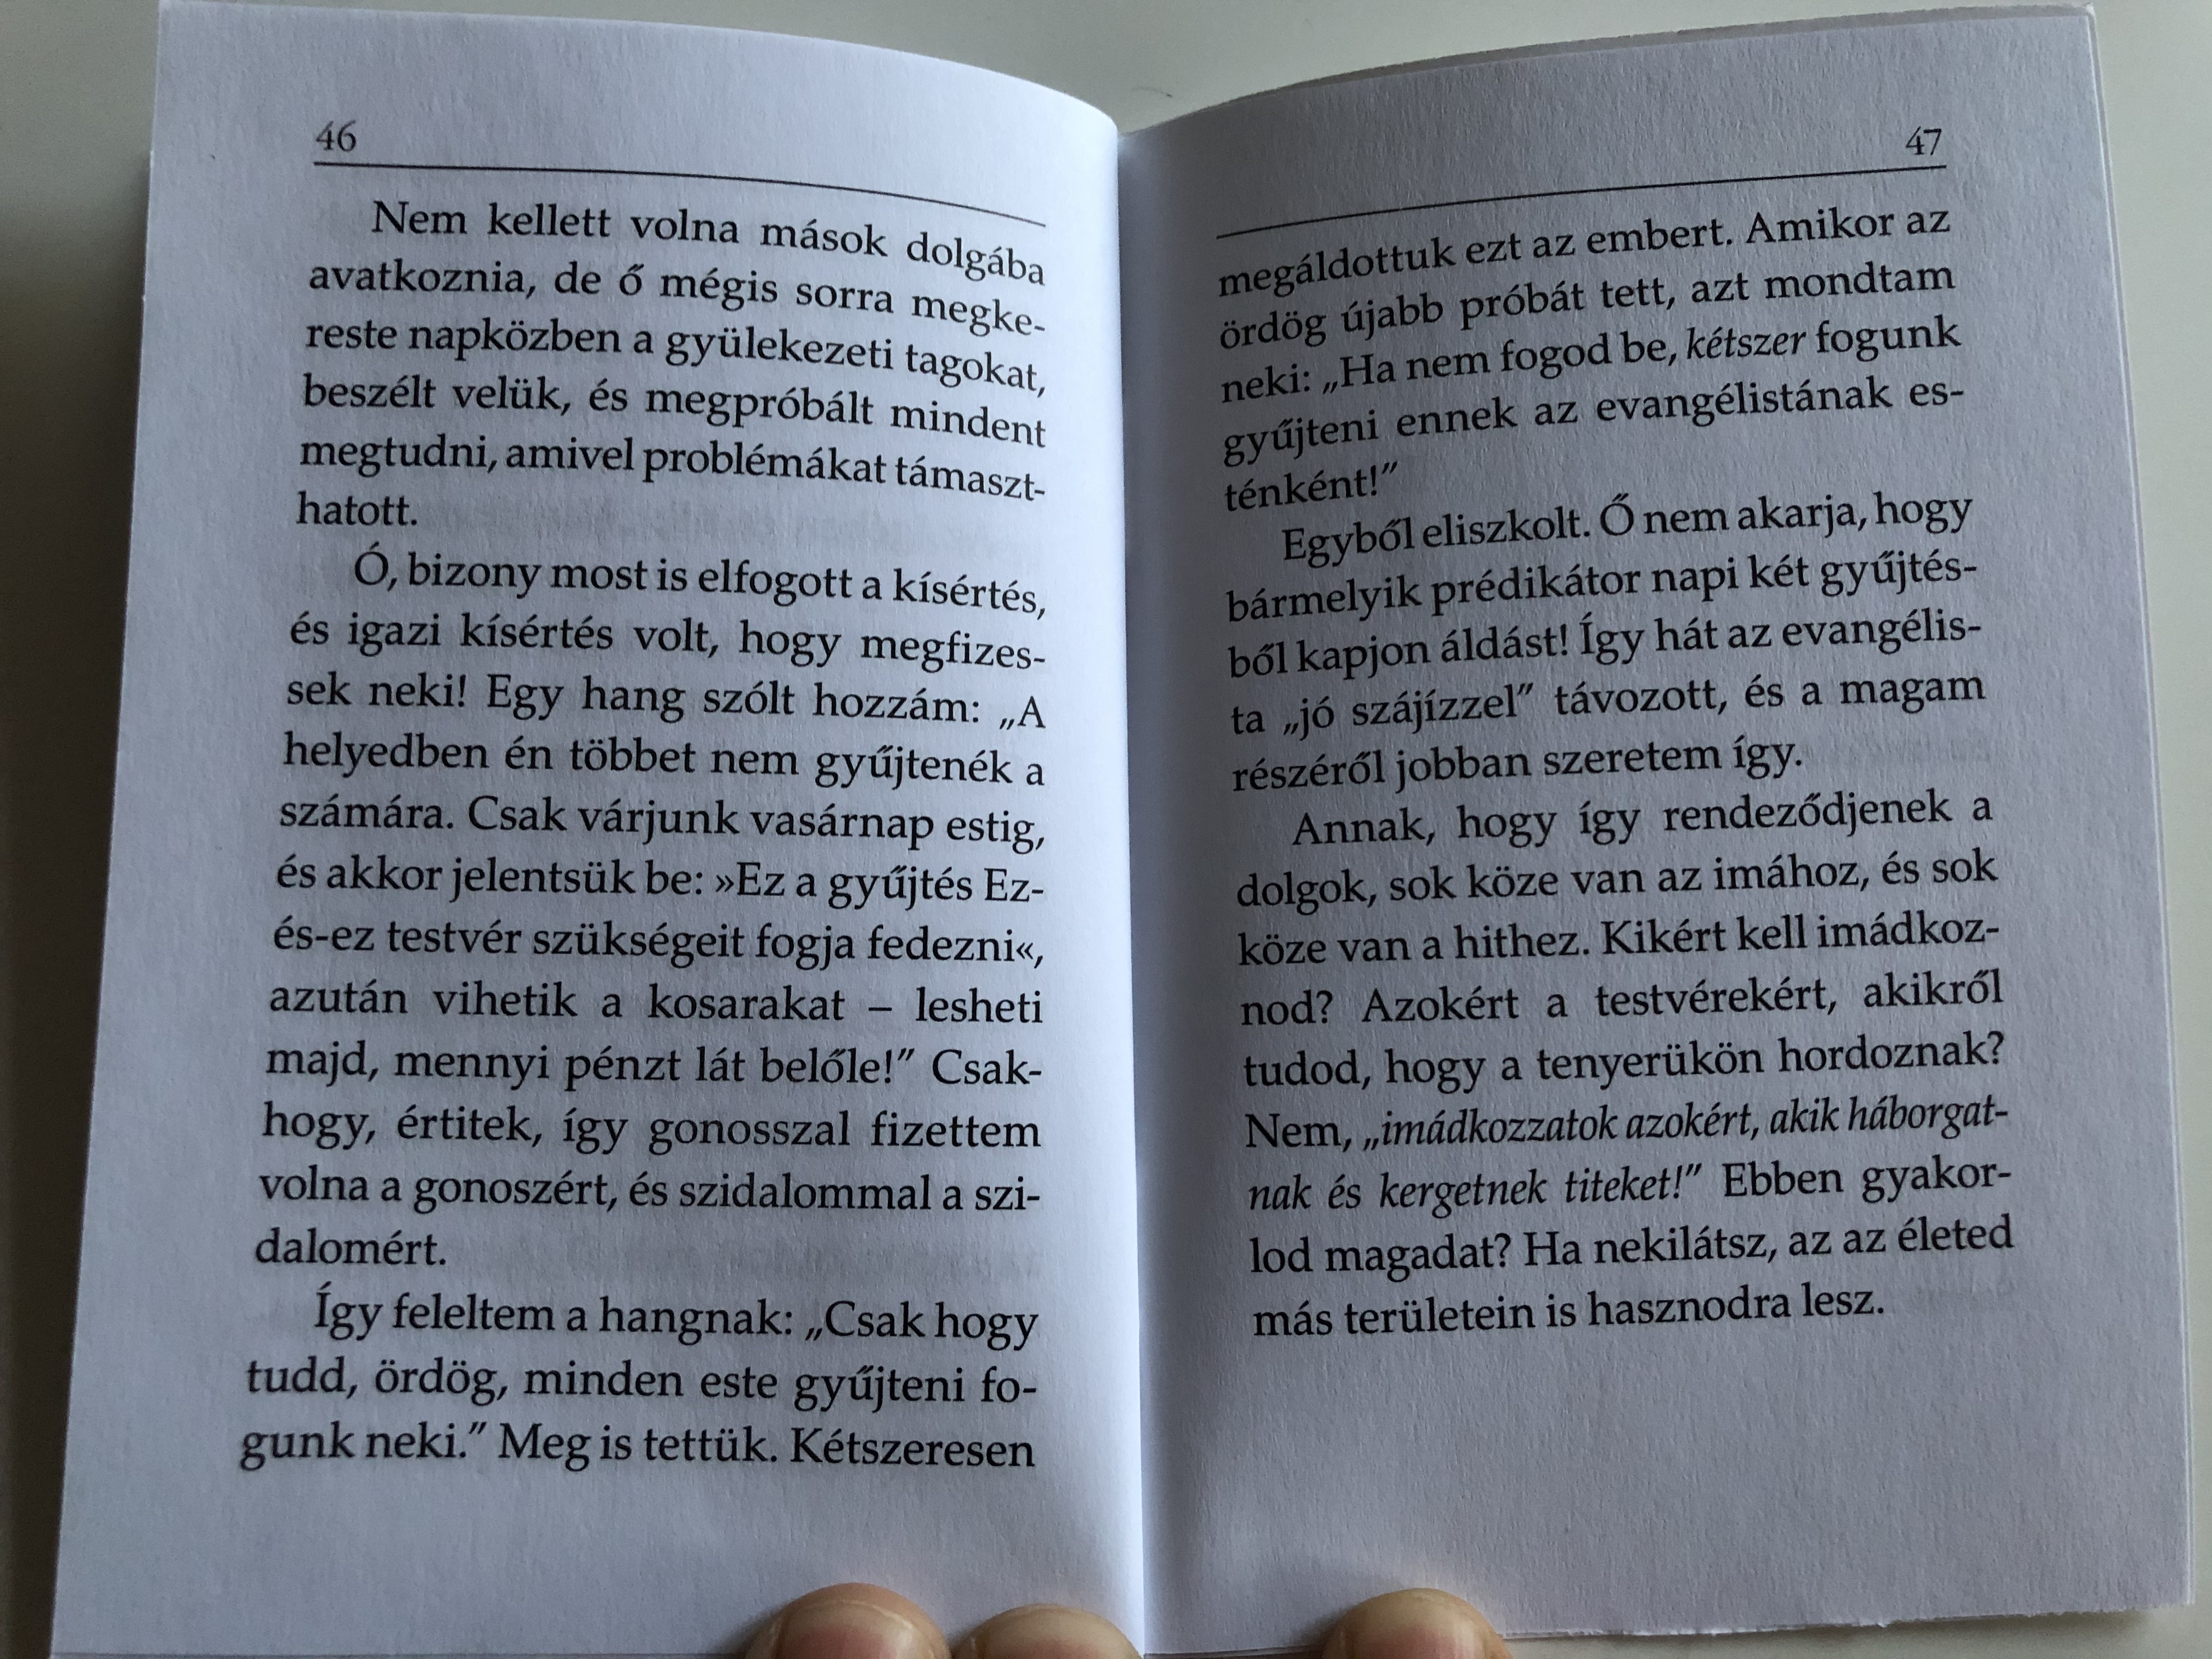 hogyan-j-rhatsz-isteni-szeretetben-by-kenneth-e.-hagin-hungarian-edition-of-how-to-walk-in-love-4-.jpg